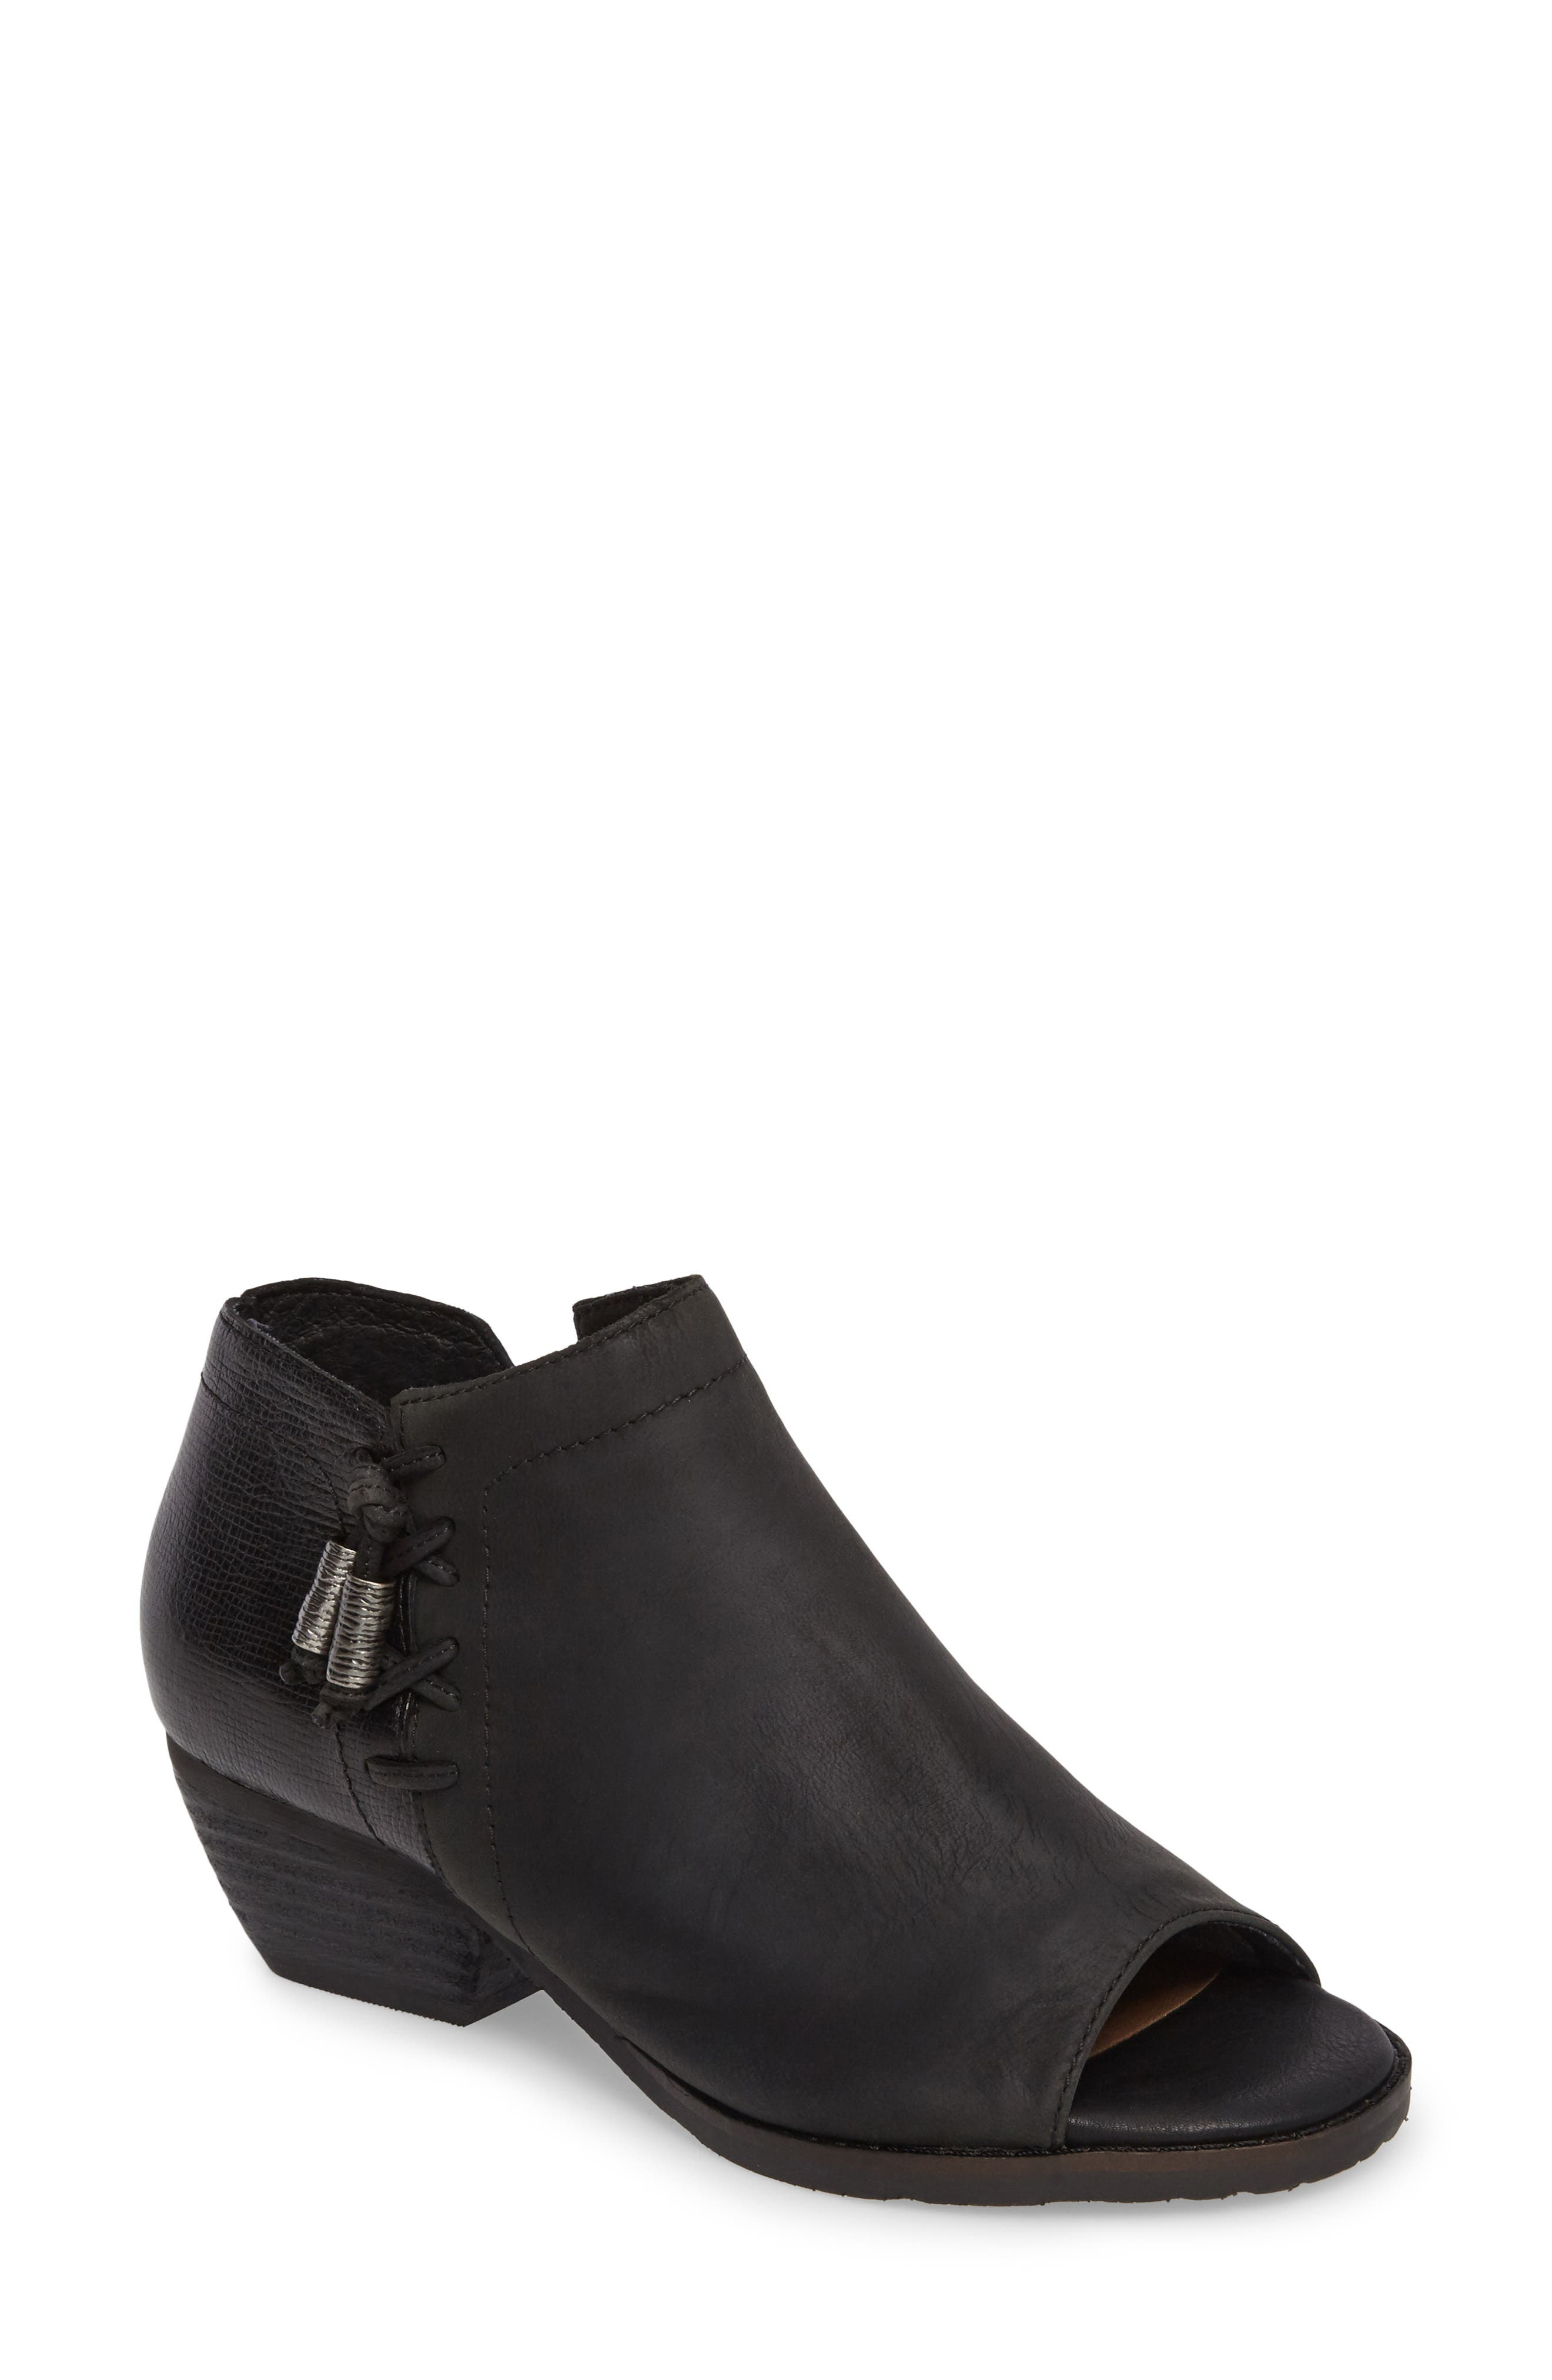 Truckage Open Toe Bootie,                         Main,                         color, BLACK LEATHER